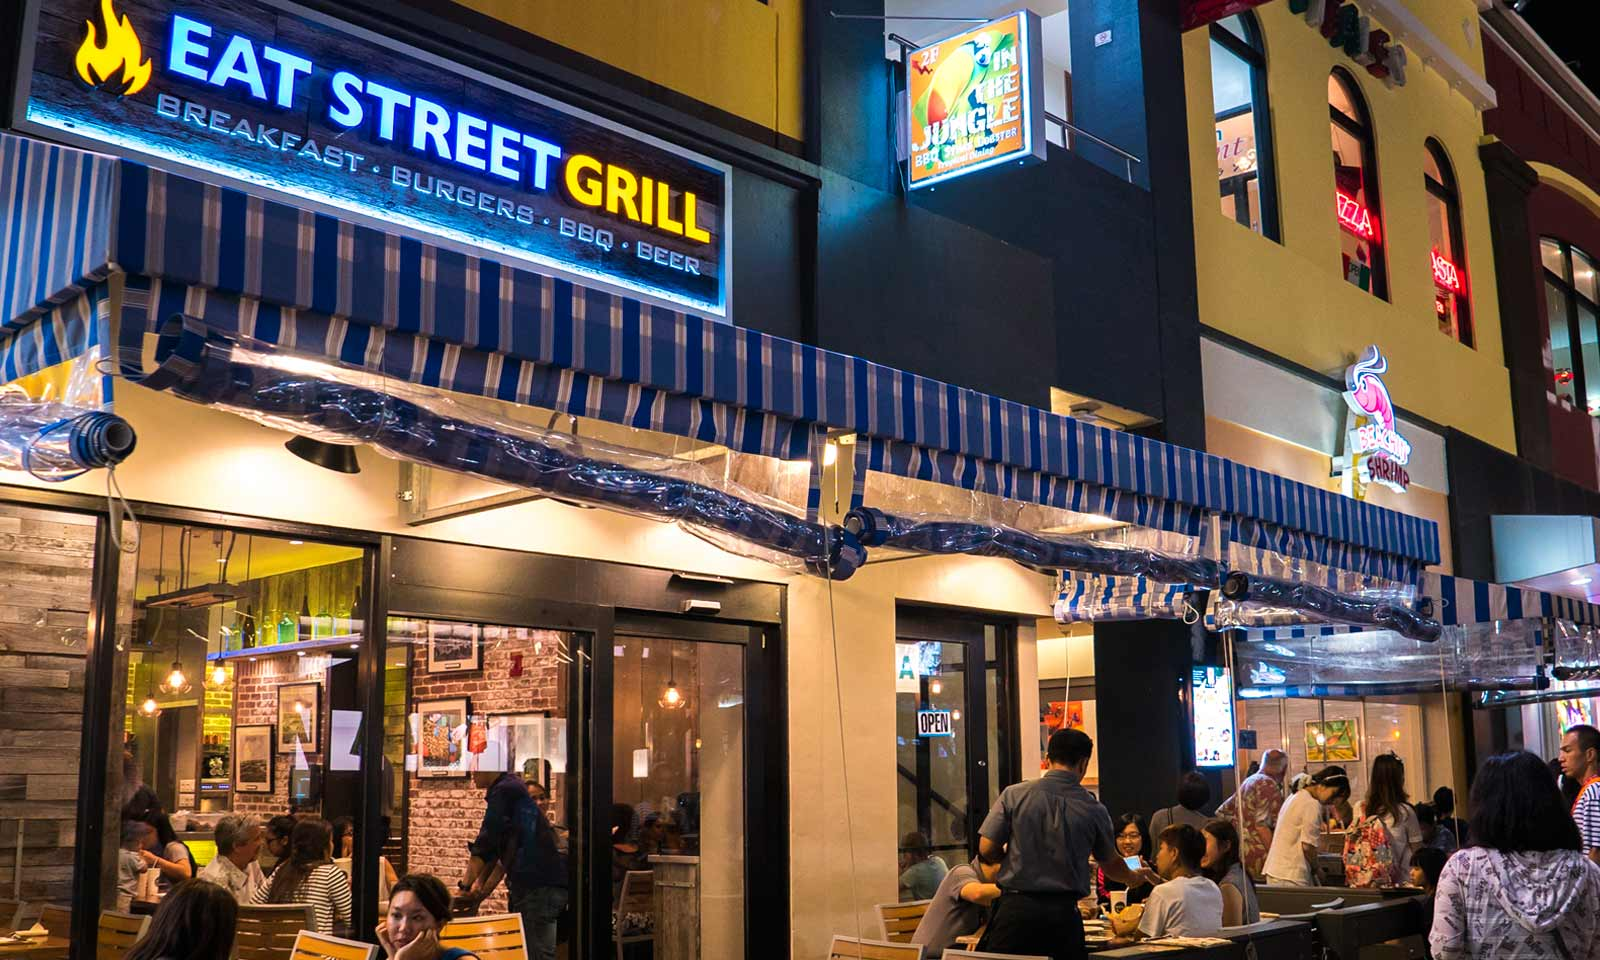 Eat Street Grill in Tumon, Guam